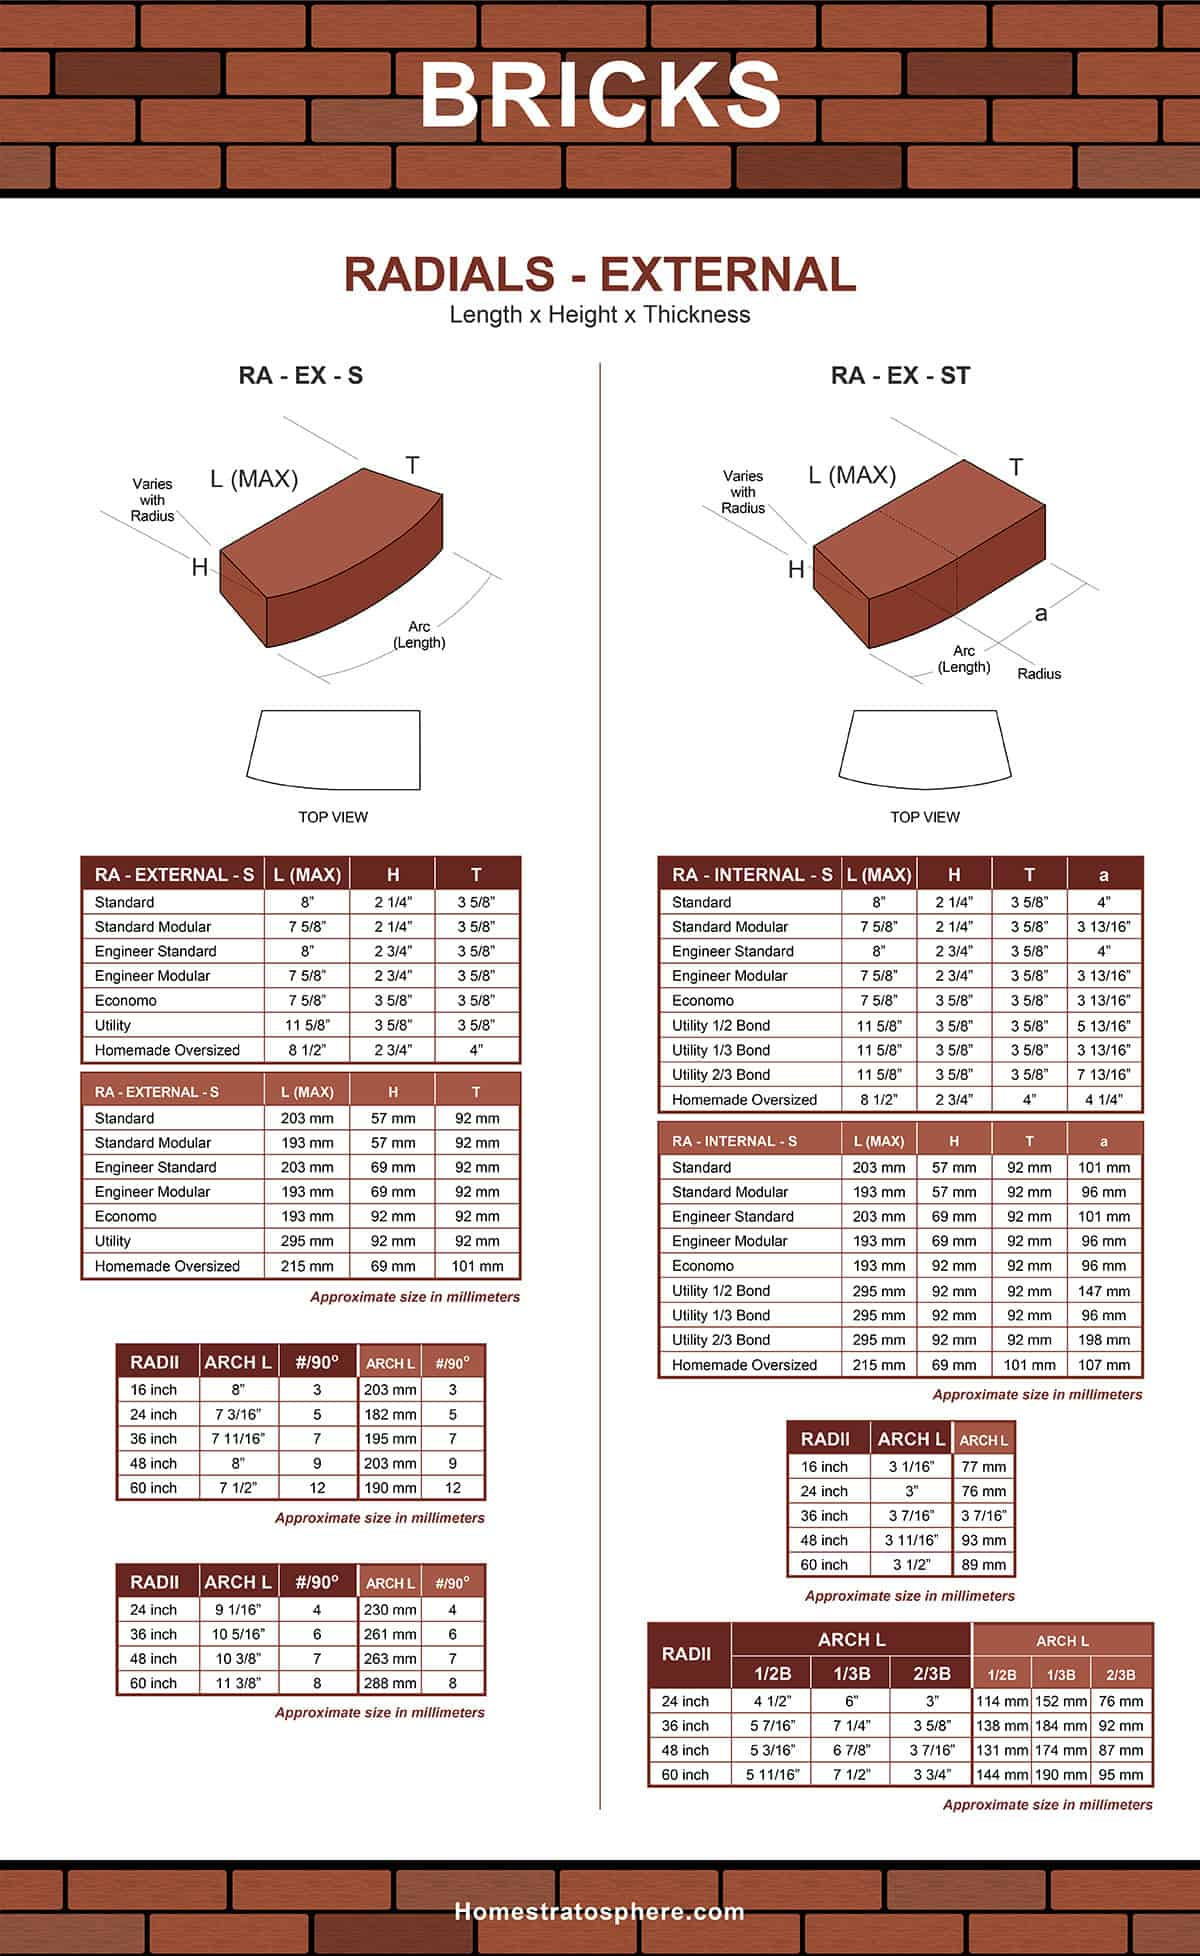 External radial brick types and sizes